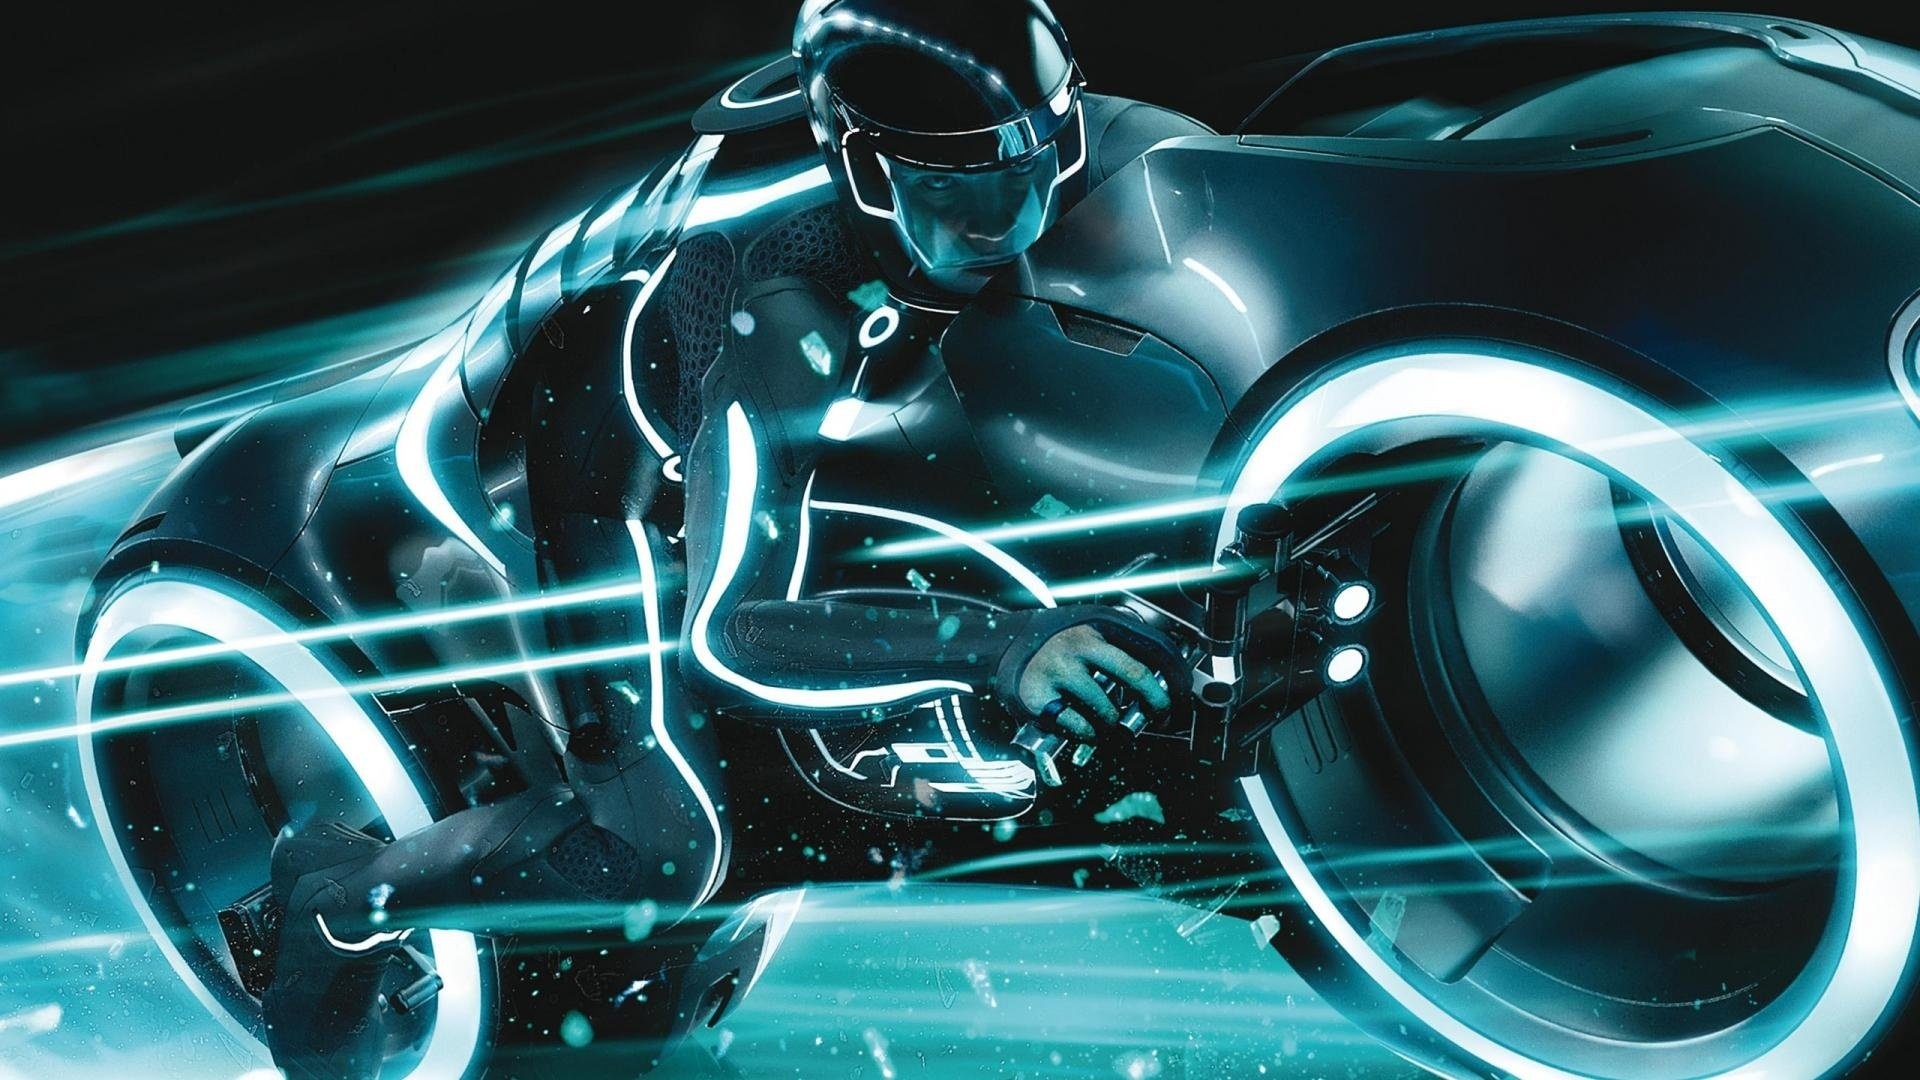 tron bike wallpaper - sf wallpaper